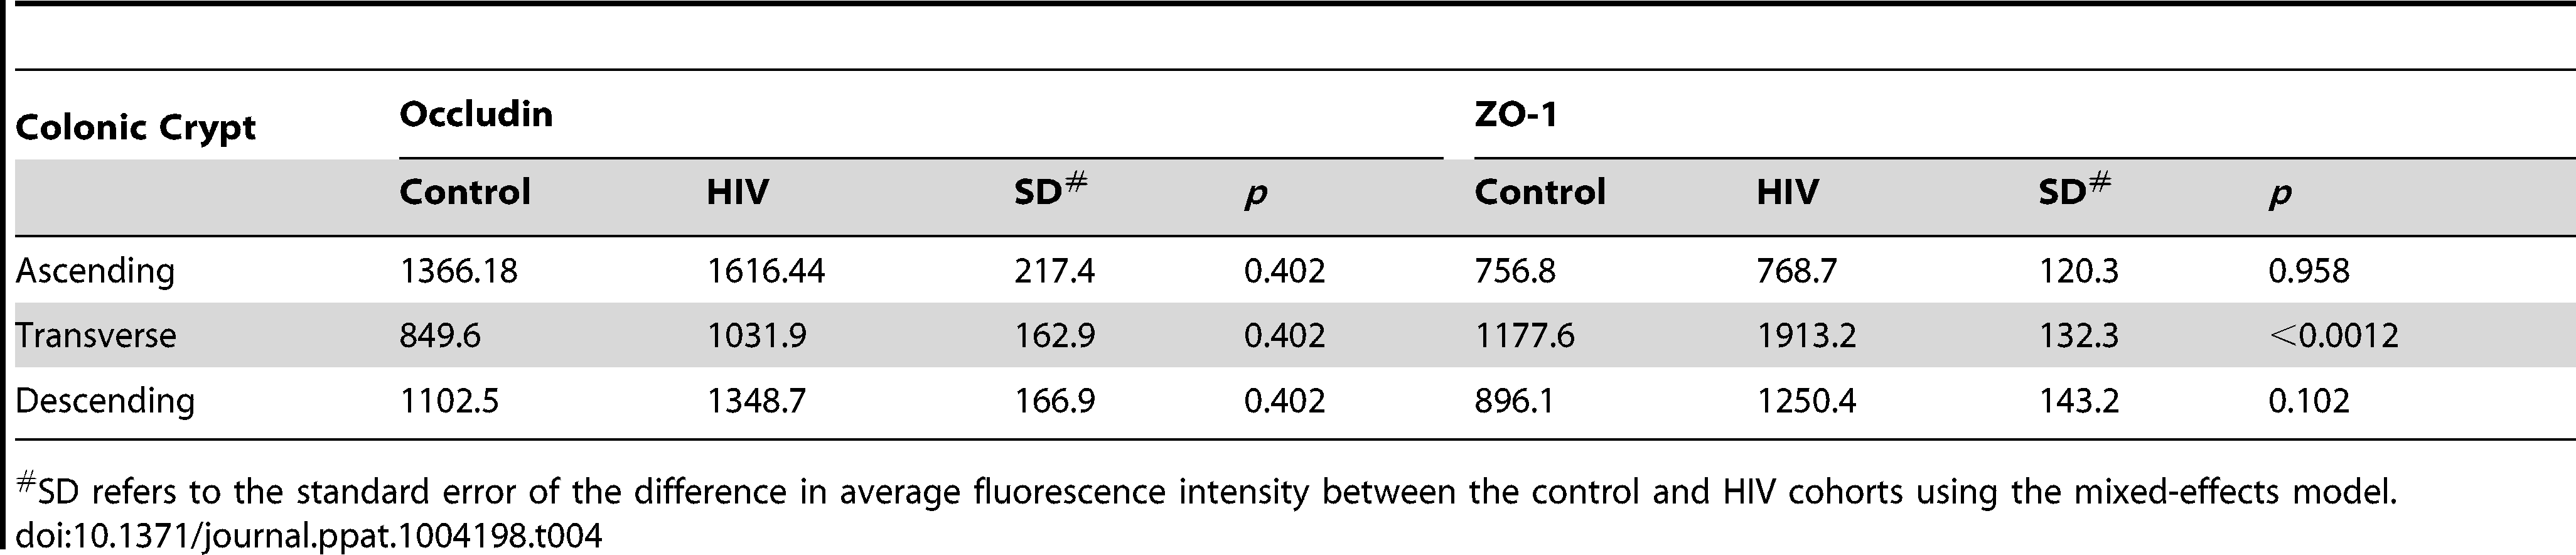 Average fluorescence intensity for occludin and ZO-1 staining of colonic crypt epithelium sections.